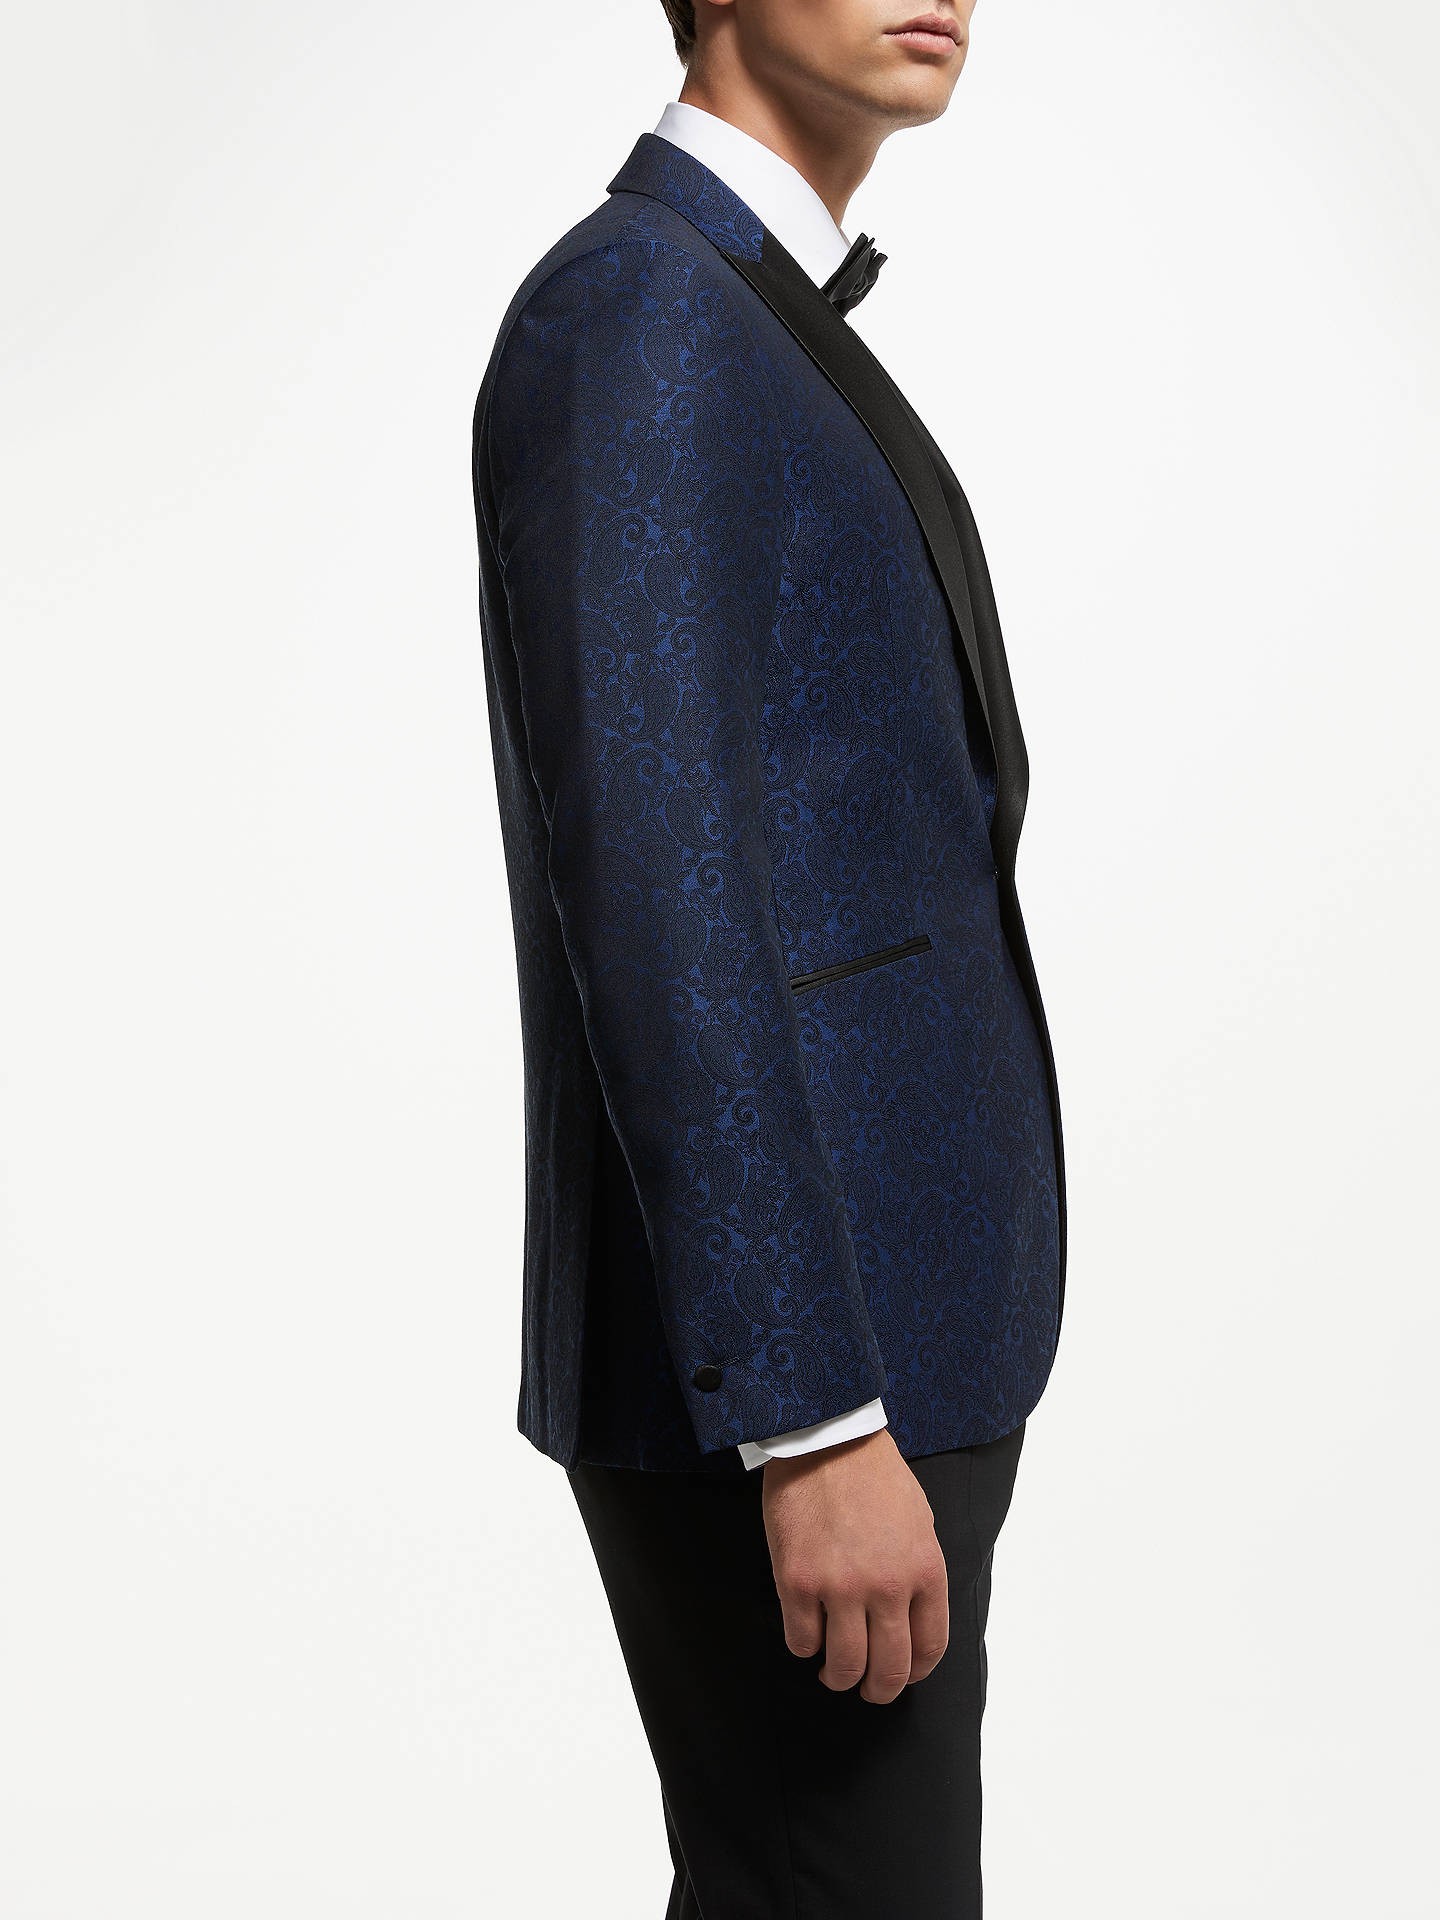 BuyJohn Lewis & Partners Paisley Dress Suit Jacket, Electric Blue, 40L Online at johnlewis.com